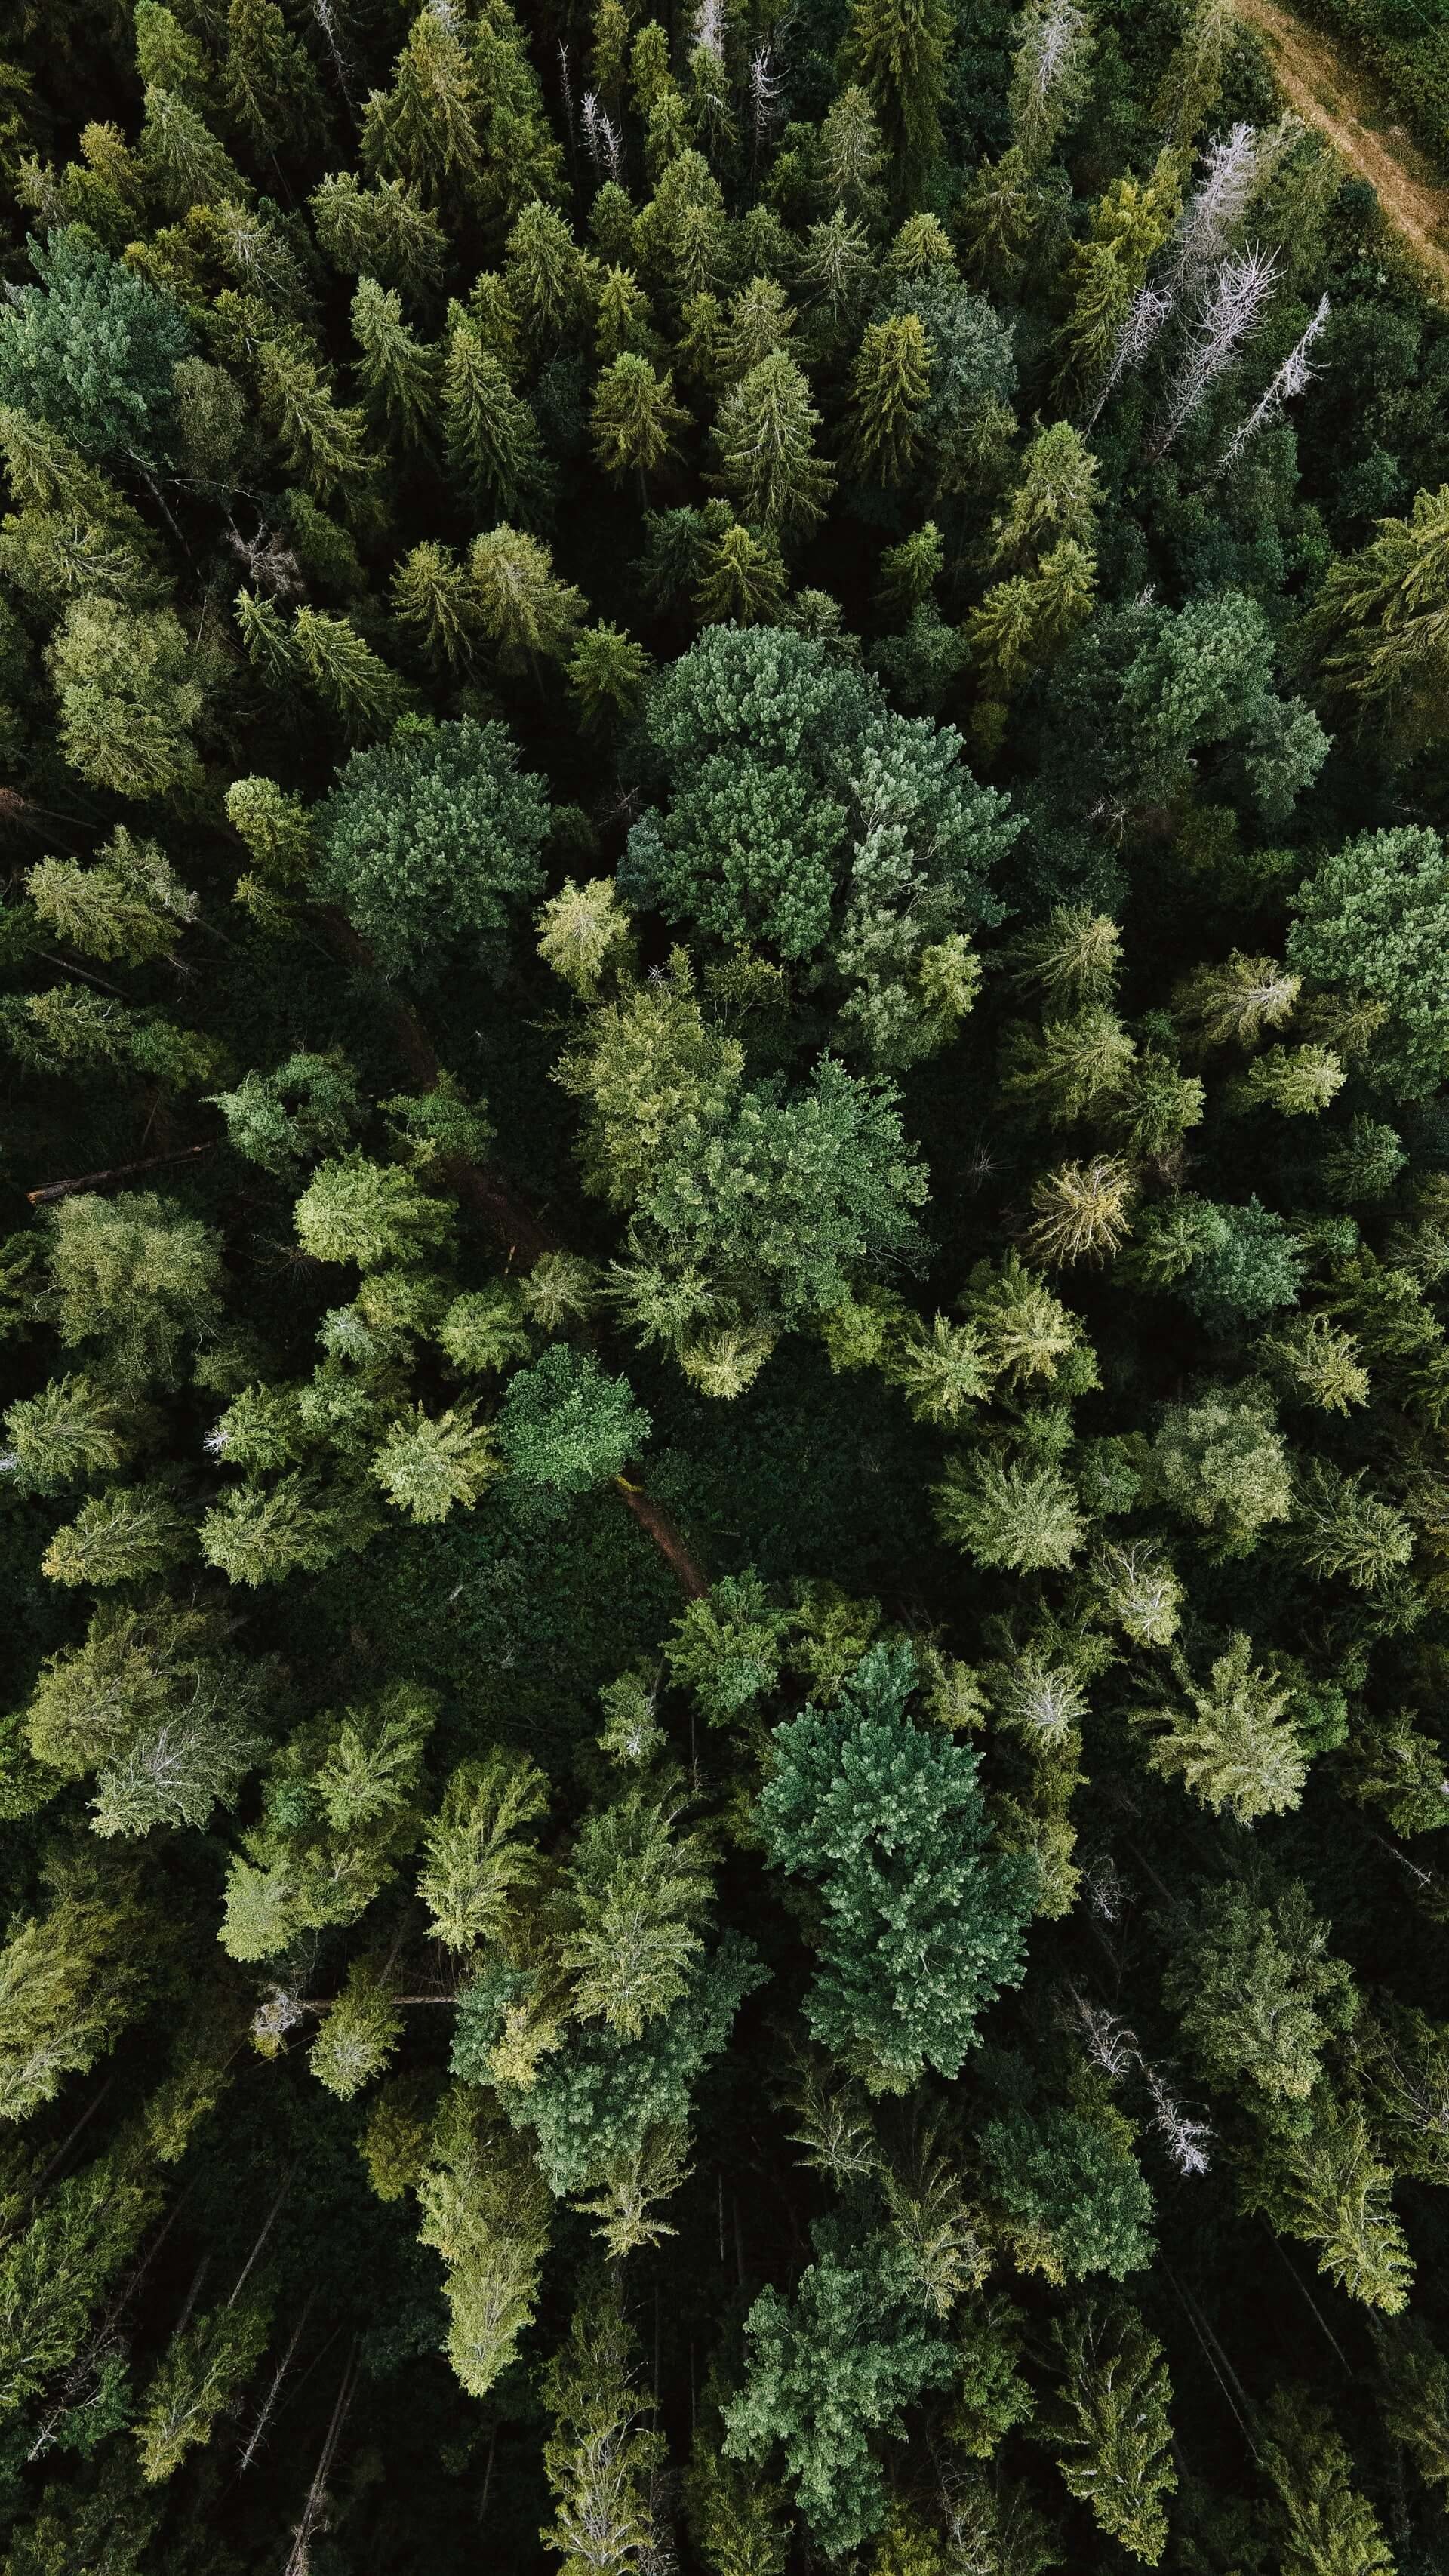 Overhead view of a pine forest